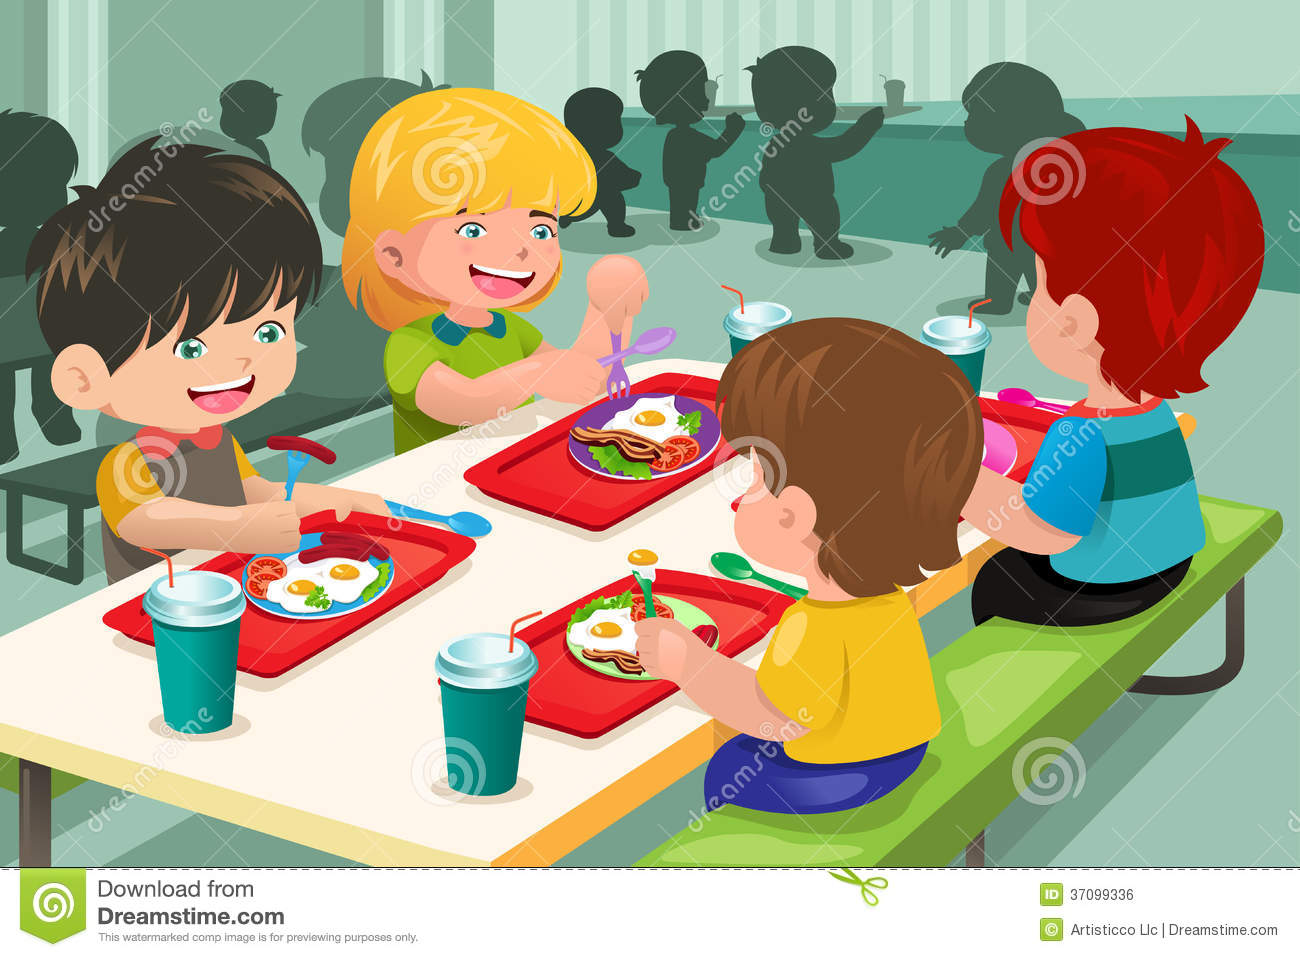 Displaying 20 gt  Images For - Cafeteria Kids Clip Art   Kids Eating Breakfast At School Clipart